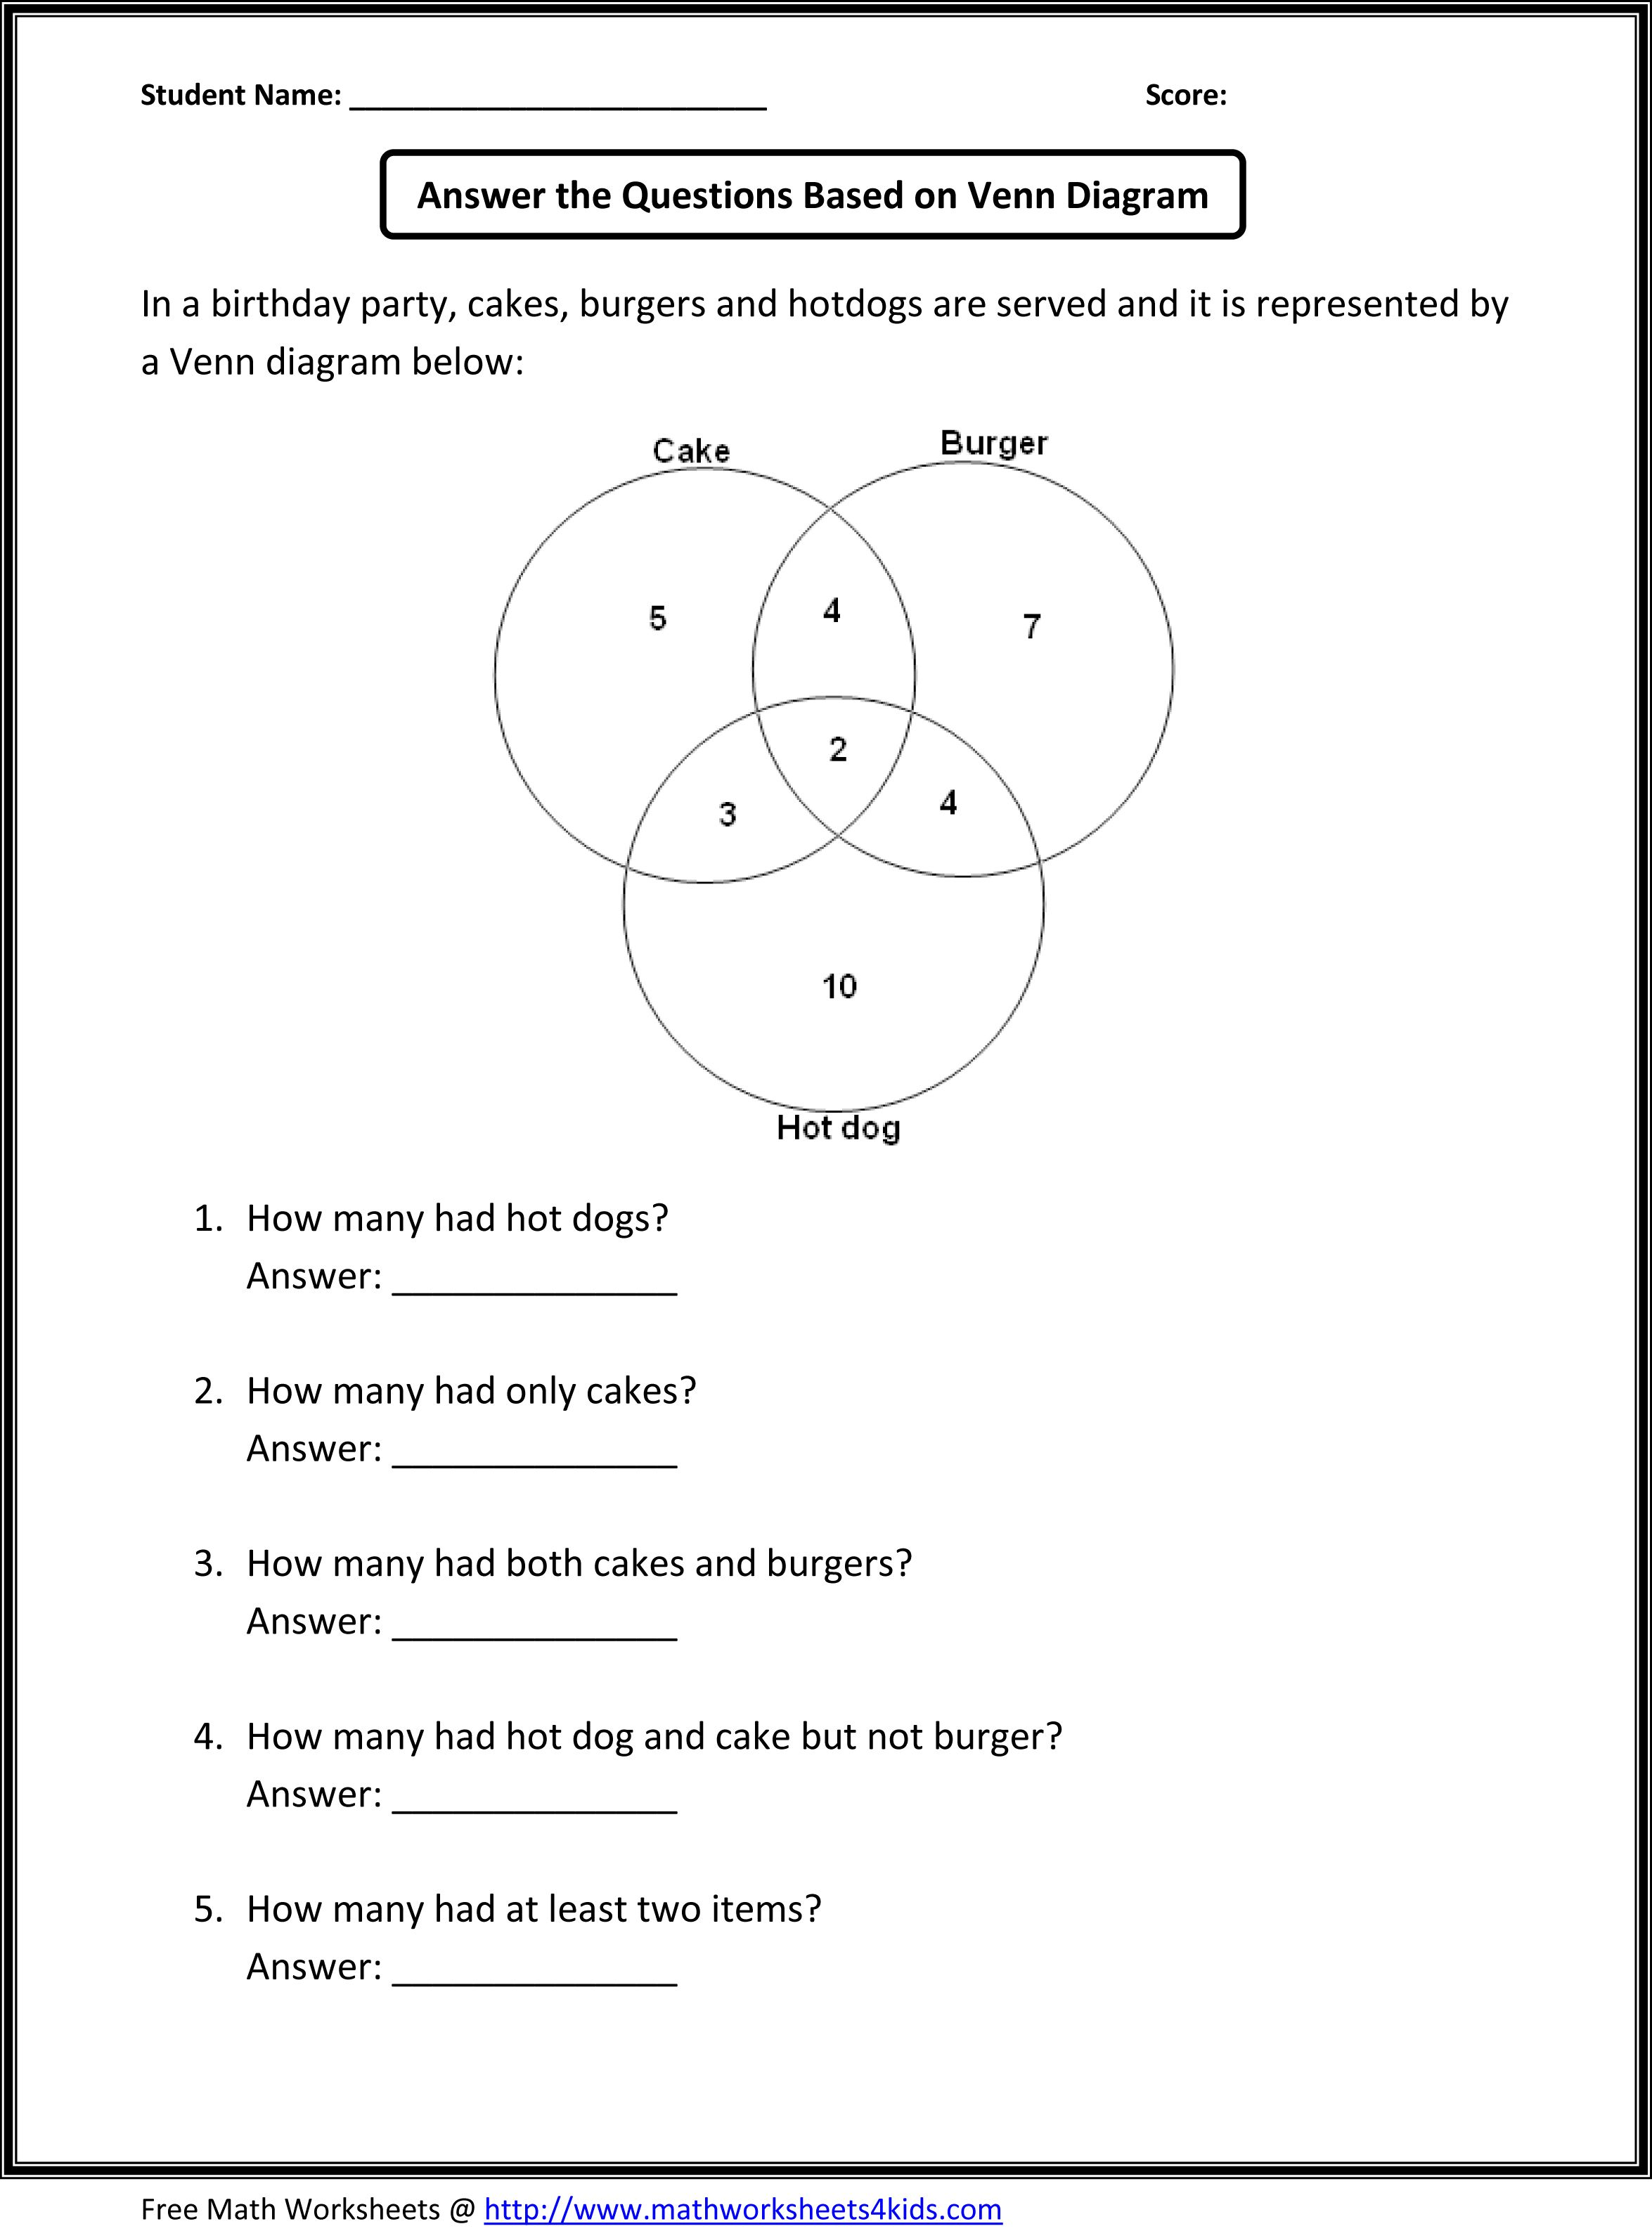 Uncategorized 5th Grade Common Core Math Word Problems Worksheets venn diagram word problems school pinterest mathematics fifth grade math worksheets